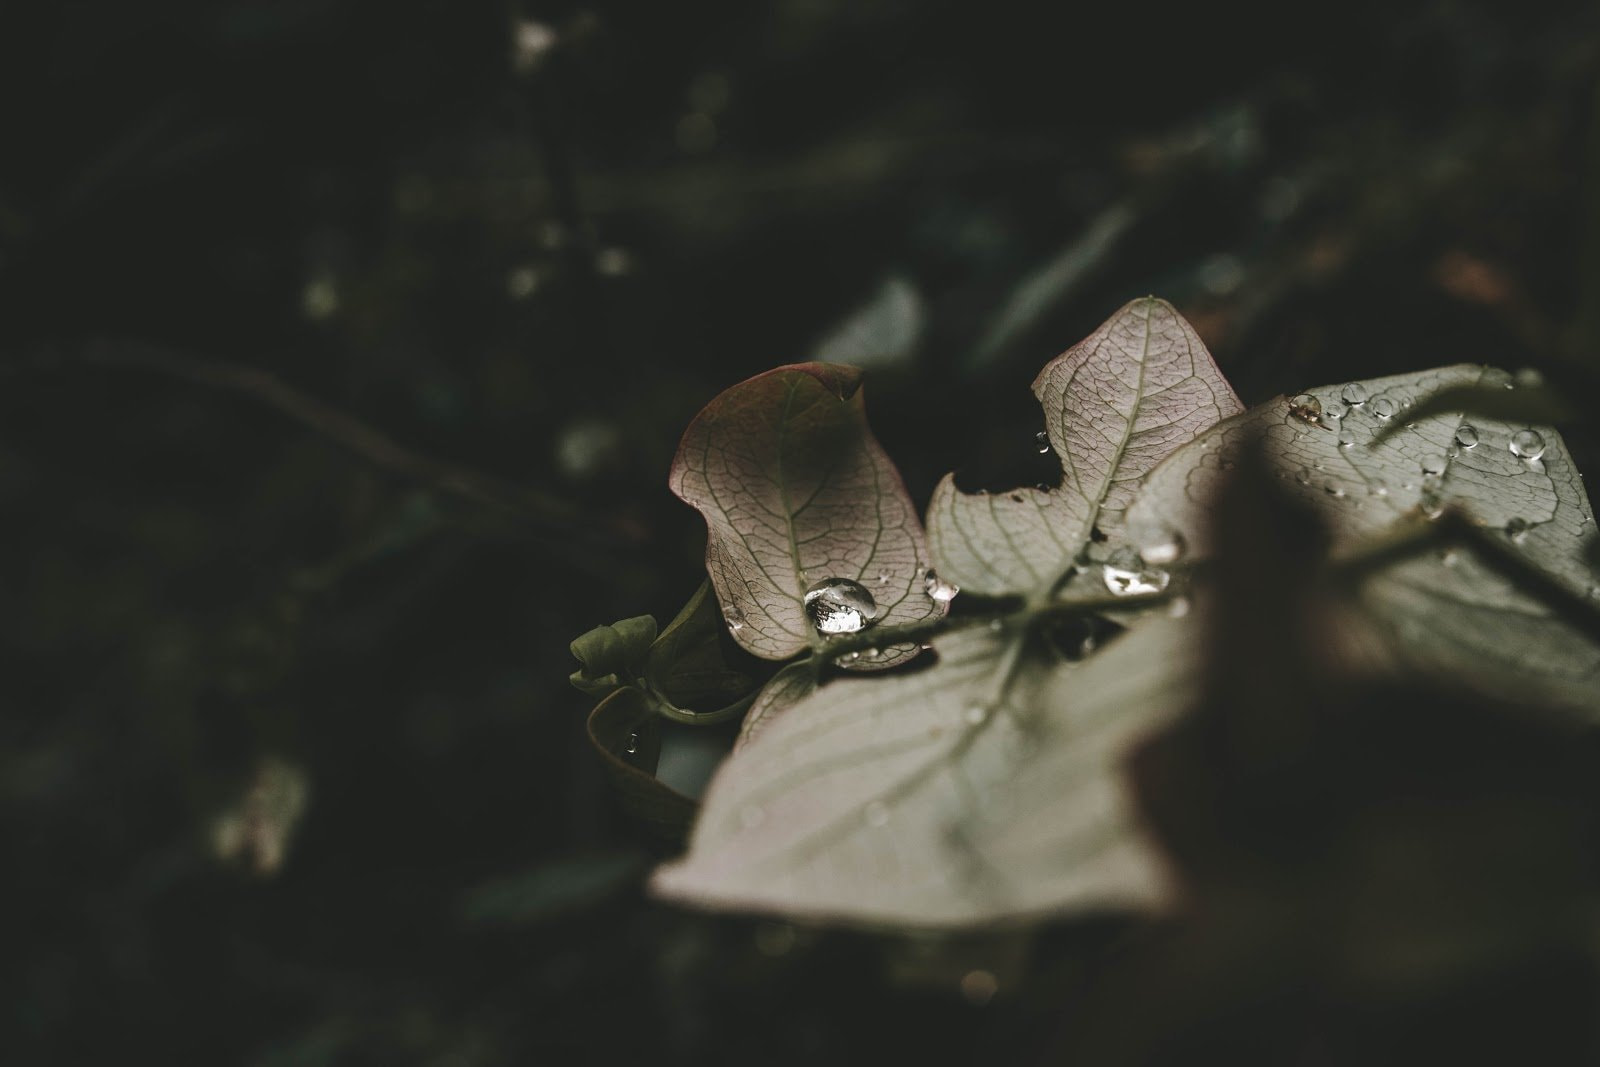 Dried leaves with a bit of water drops photo by Echo Grid